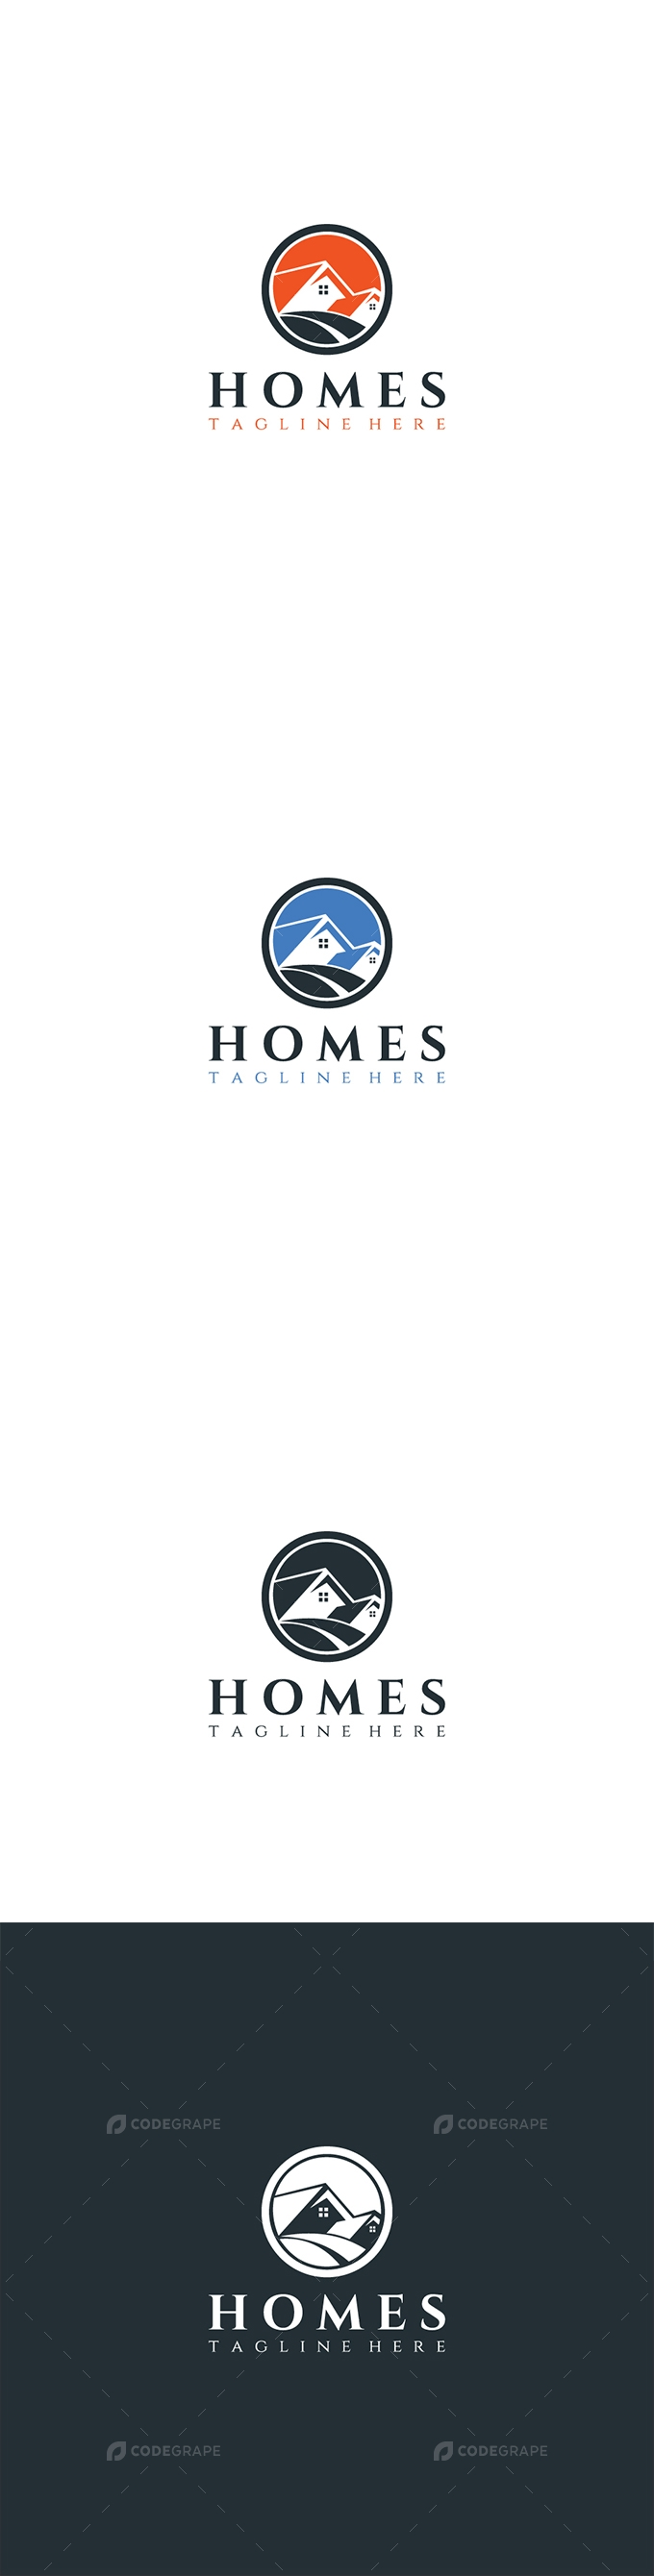 Homes Logo Design